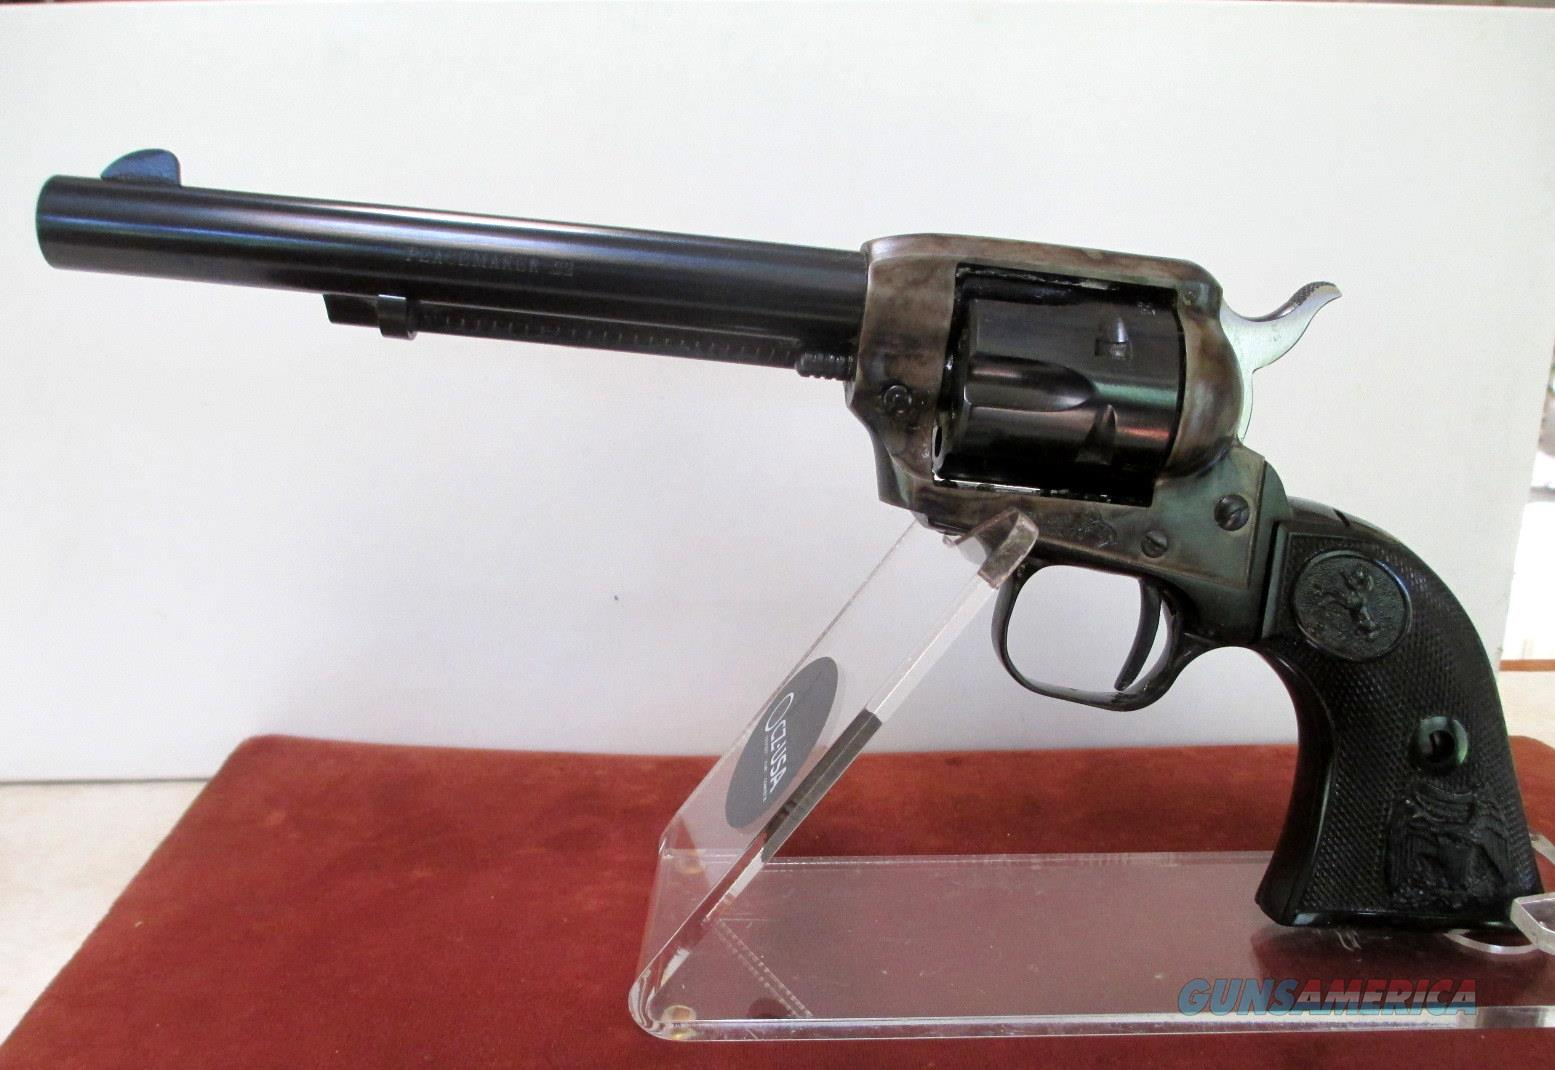 COLT DUAL CYLINDER 22LR/22MAG PEACEMAKER BLUE AND CASE COLORED WITH A 6 INCH BARREL  Guns > Pistols > Colt Single Action Revolvers - Modern (22 Cal.)